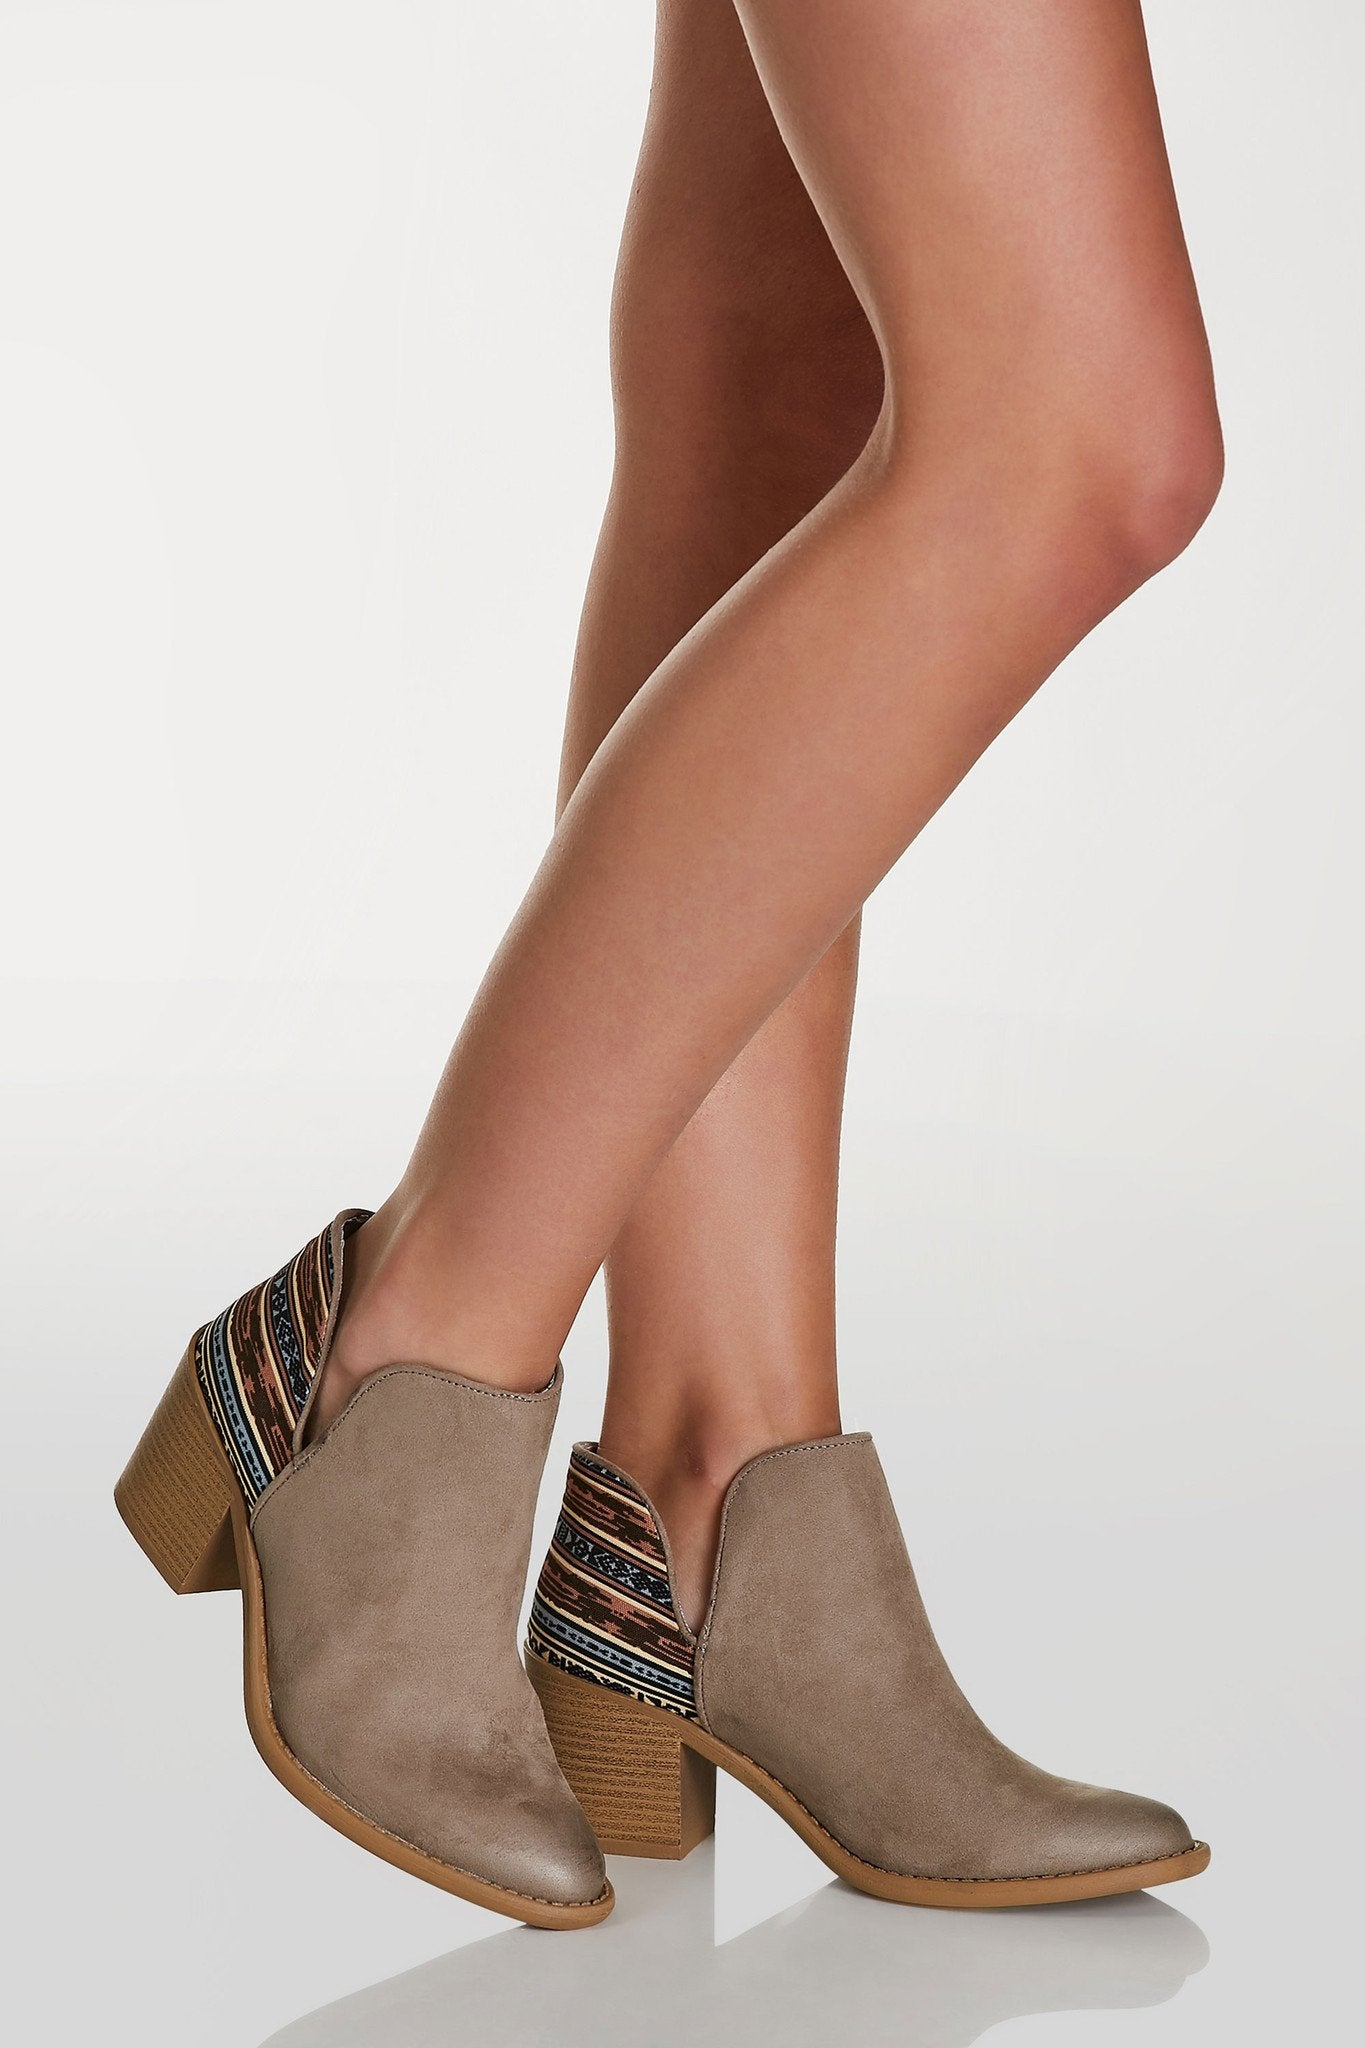 Faux suede ankle booties with side cut outs and tribal print contrast. Block heels and pointed toe tinish.